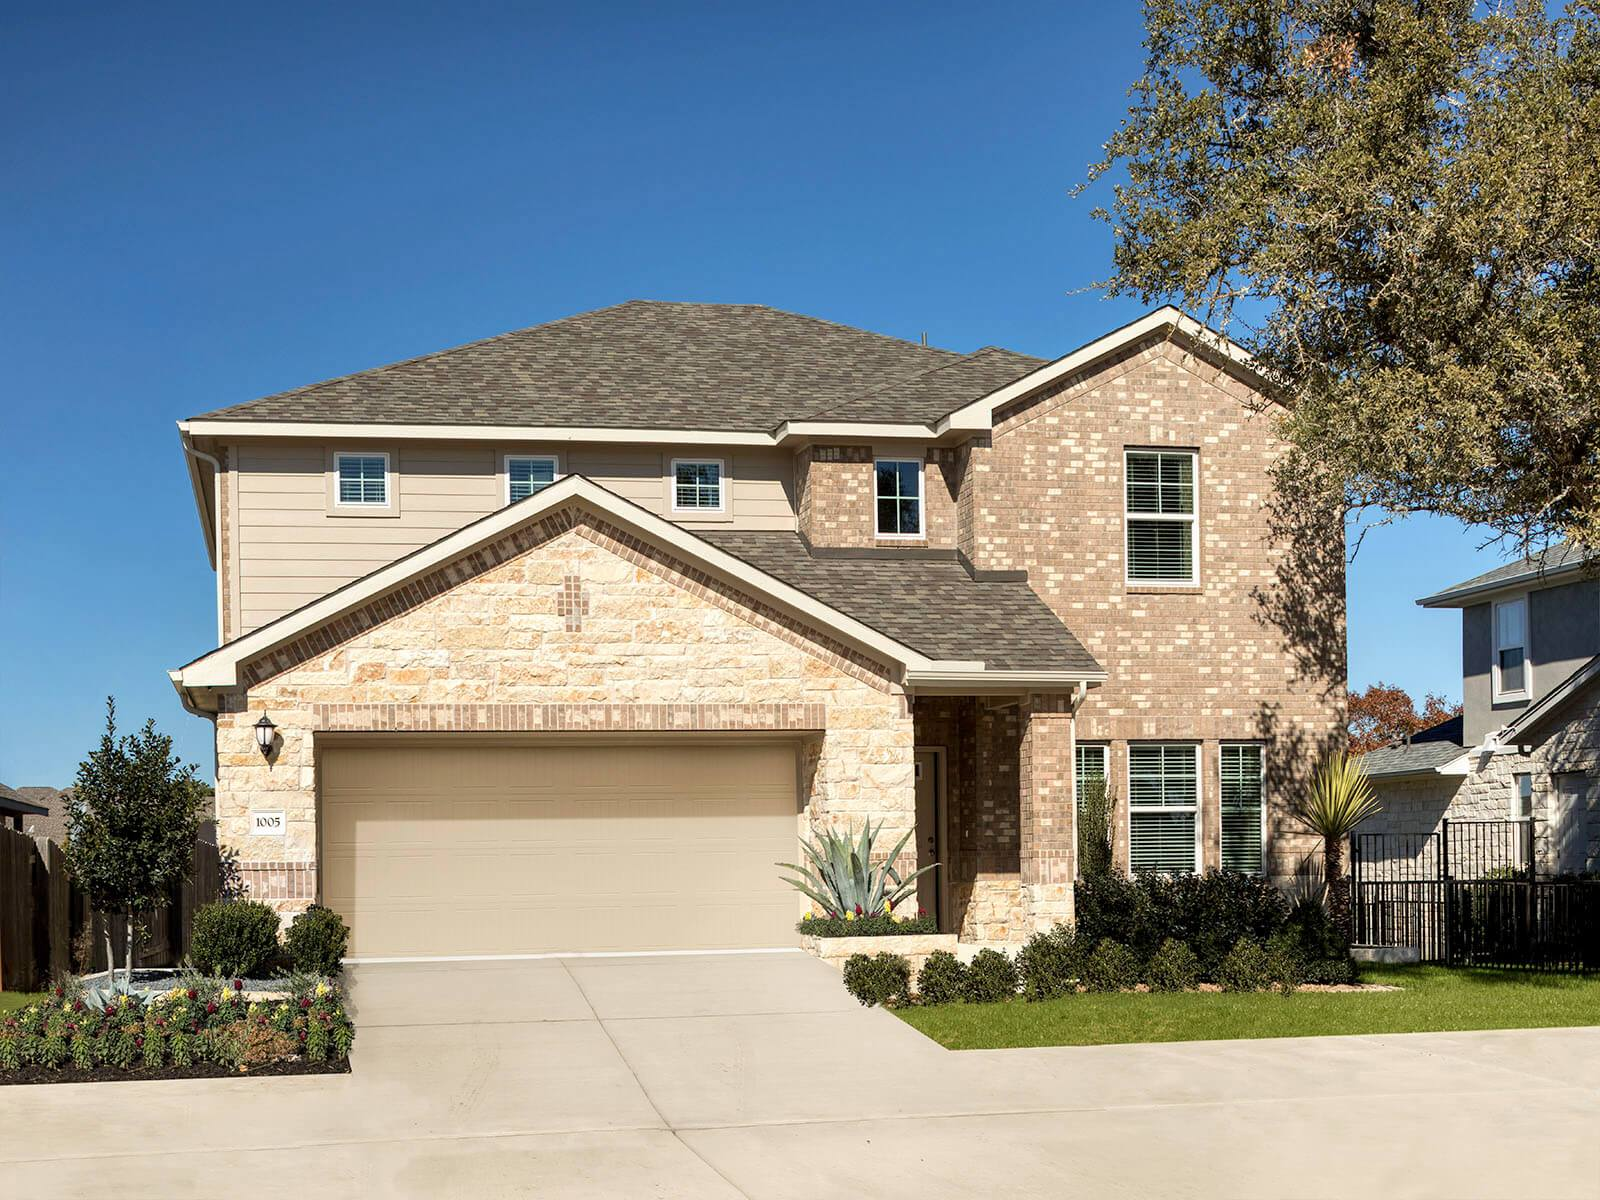 The Kessler plan offers plenty of space for the whole family.